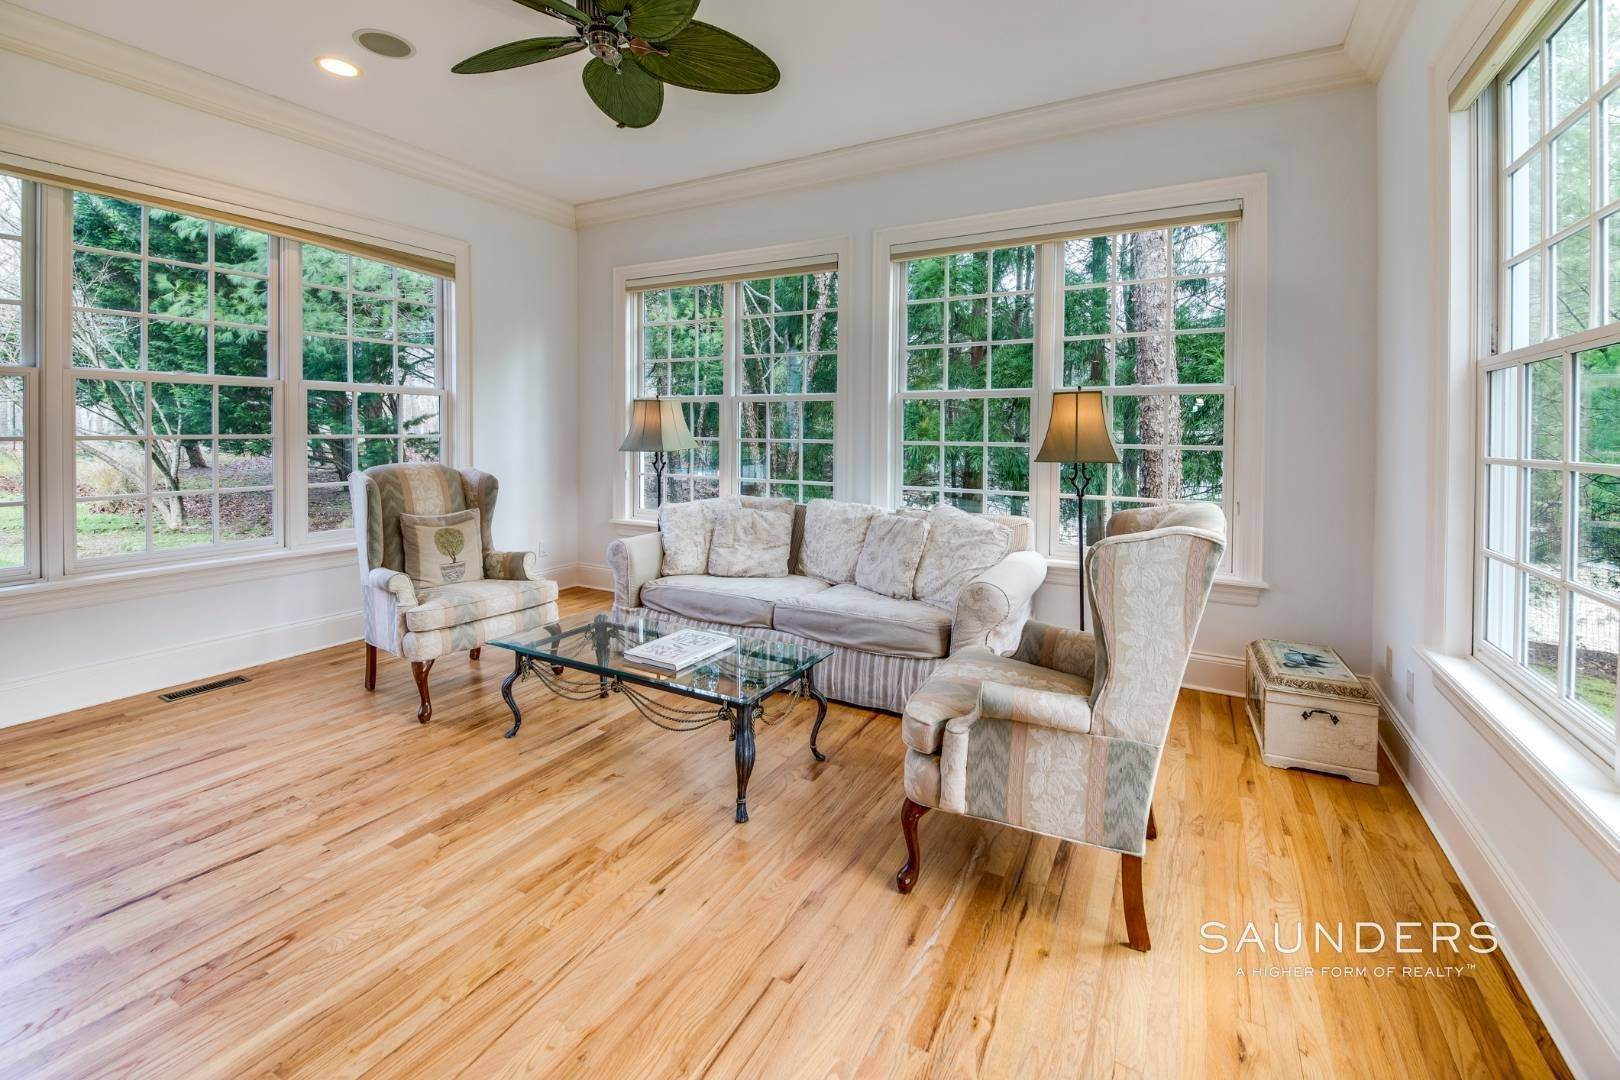 11. Single Family Homes for Sale at Builder's Own, Hamptons Traditional 33 Cedar Trails, East Hampton, East Hampton Town, NY 11937